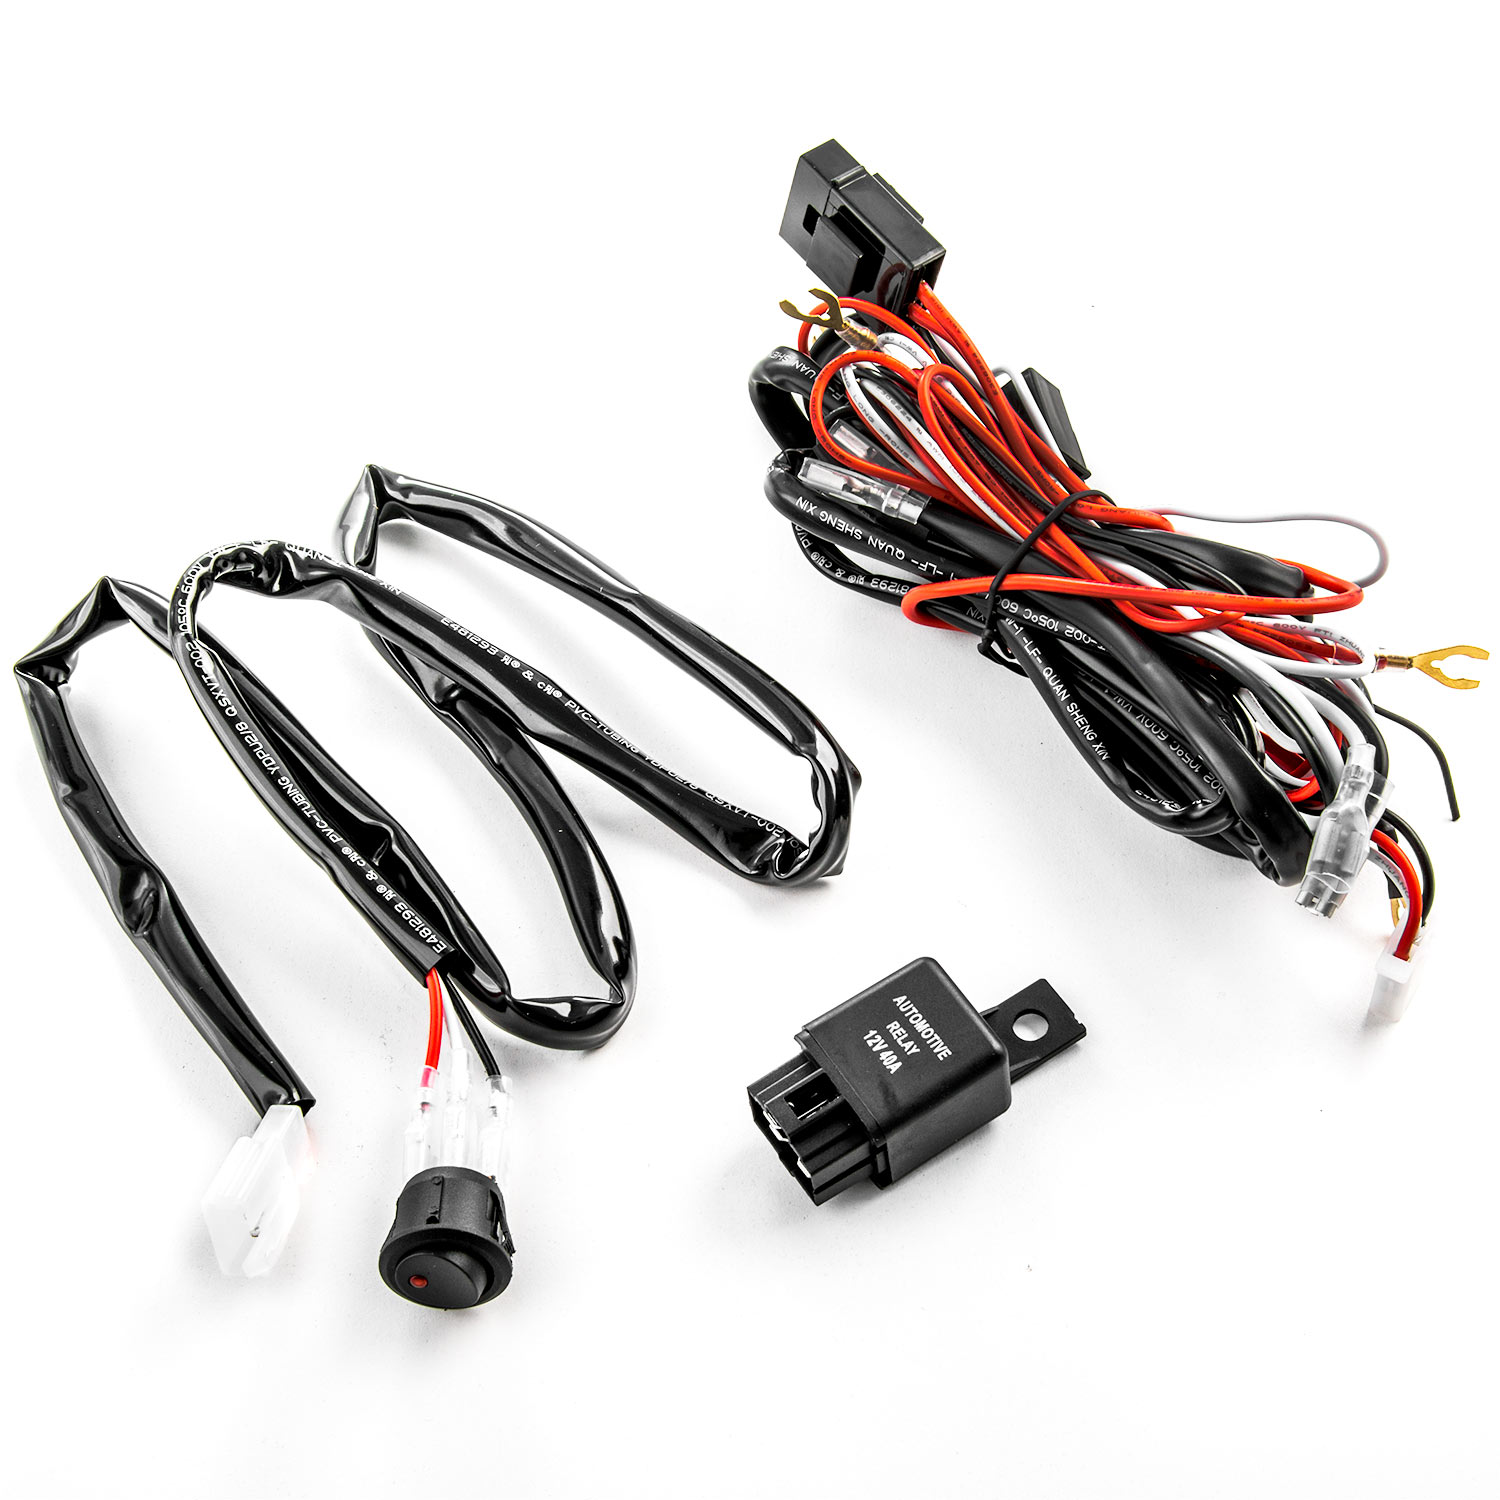 Wiring Harness Kit For Led Lights 200w 12v 40a Fuse Relay On Off Electrical Switch Universal Compatible With Hid Or Halogen Road Light Bars